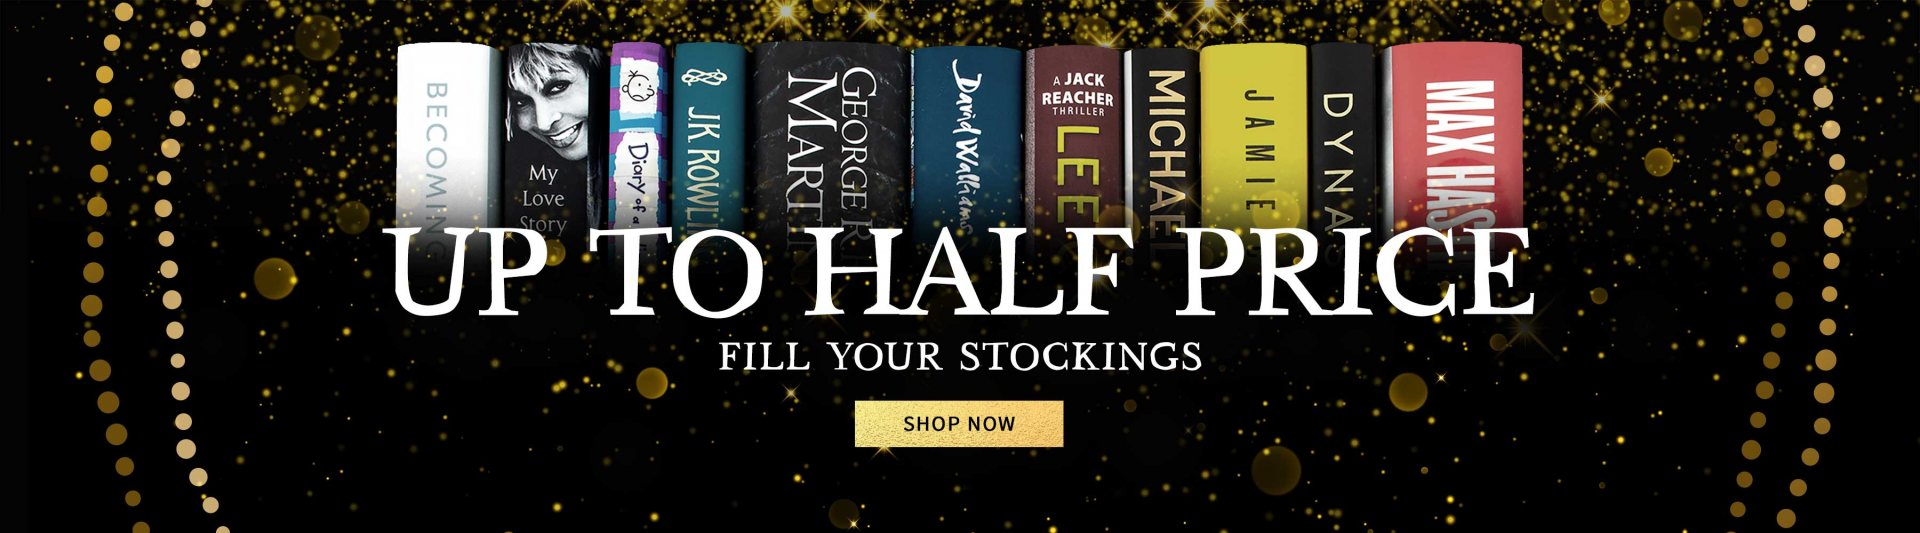 Buy Books Stationery And Gifts Online In Store Waterstones Hey Baby My Frist Book Softbook Black Friday Up To Half Price Fill Your Stockings